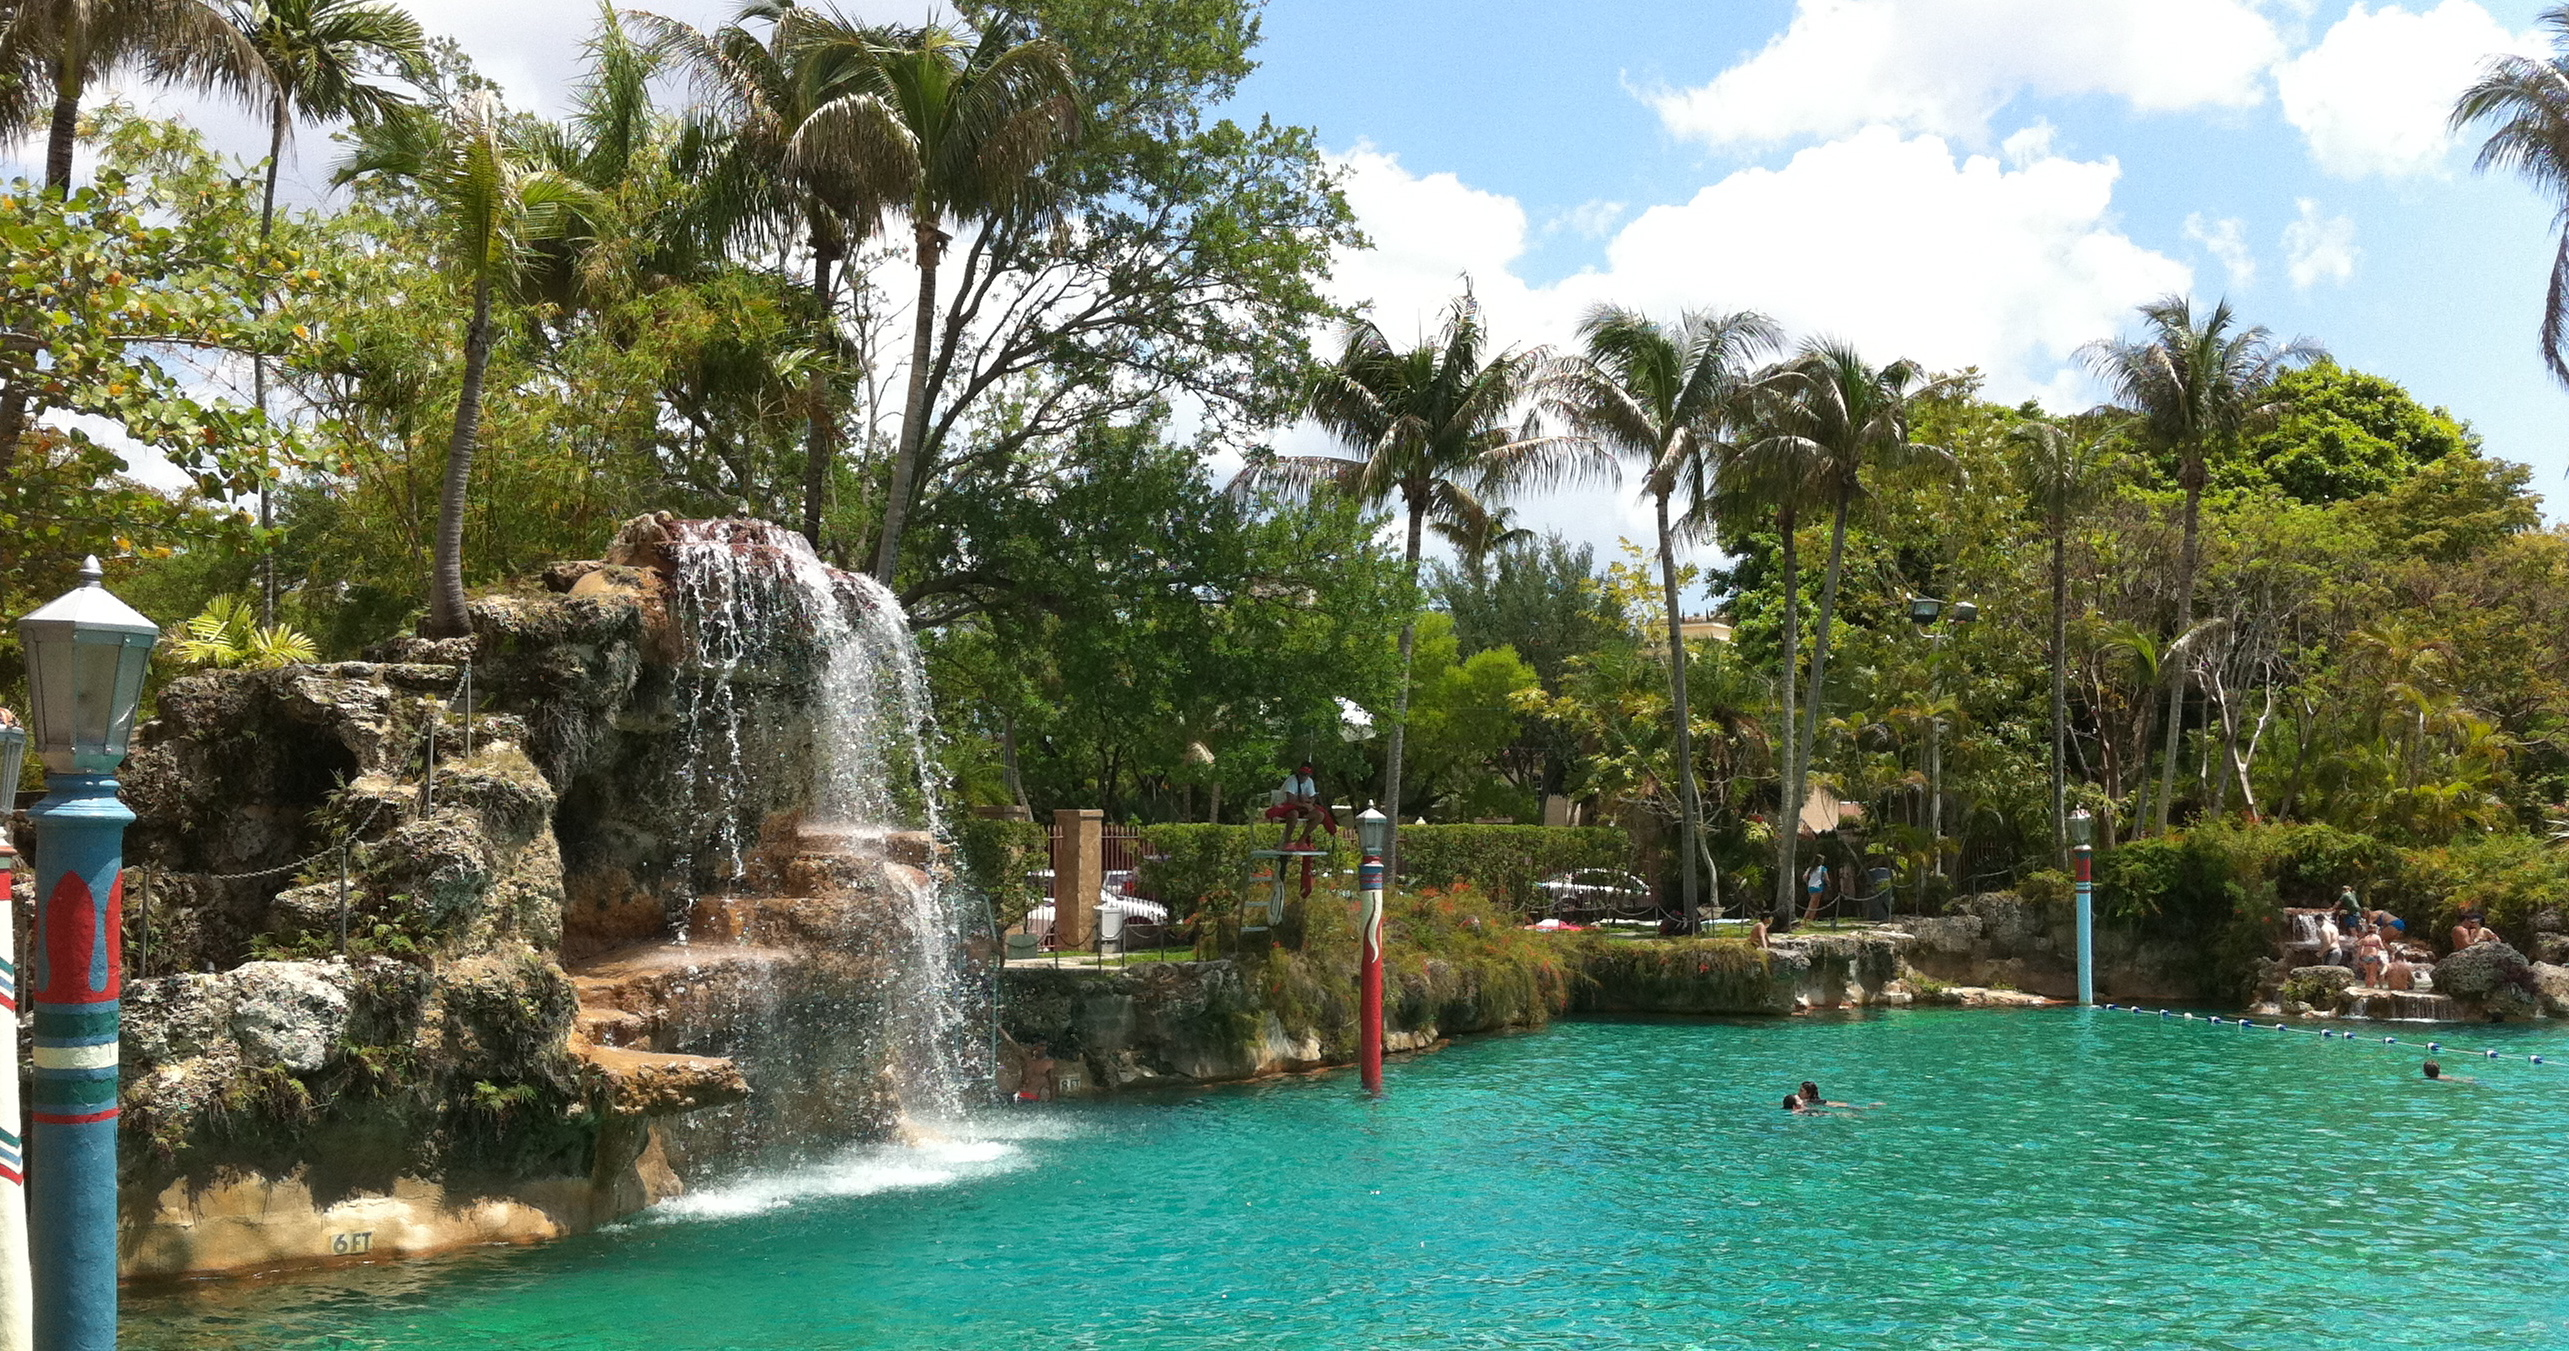 Unique Valentines Date Ideas Coral Gables: Valentines Day Dinner at the historic Venetian Pool